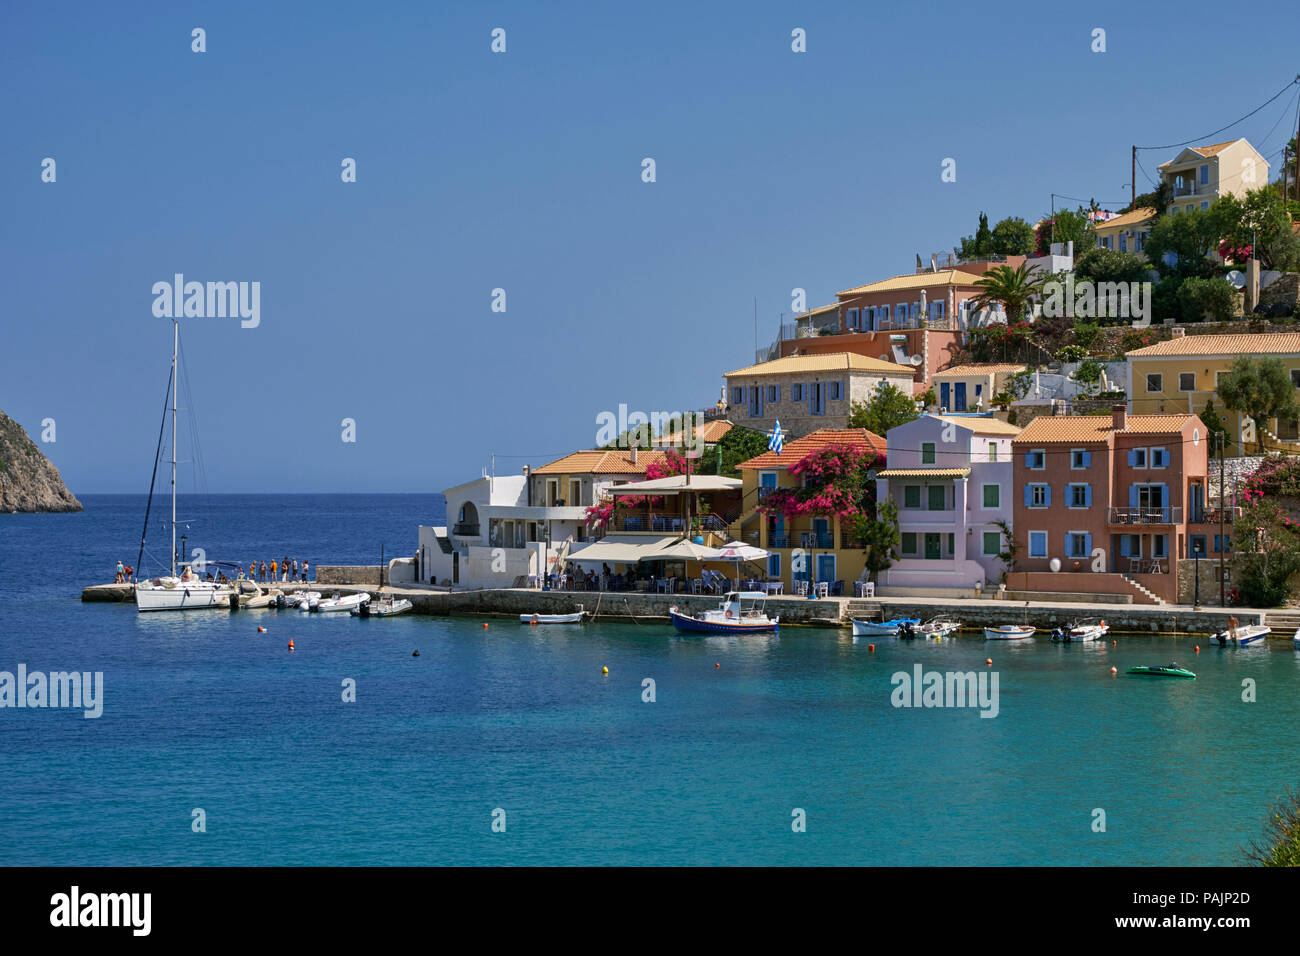 Village of Assos with houses and taverna overlooking its bay. Cephalonia, Ionian Islands, Greece. - Stock Image